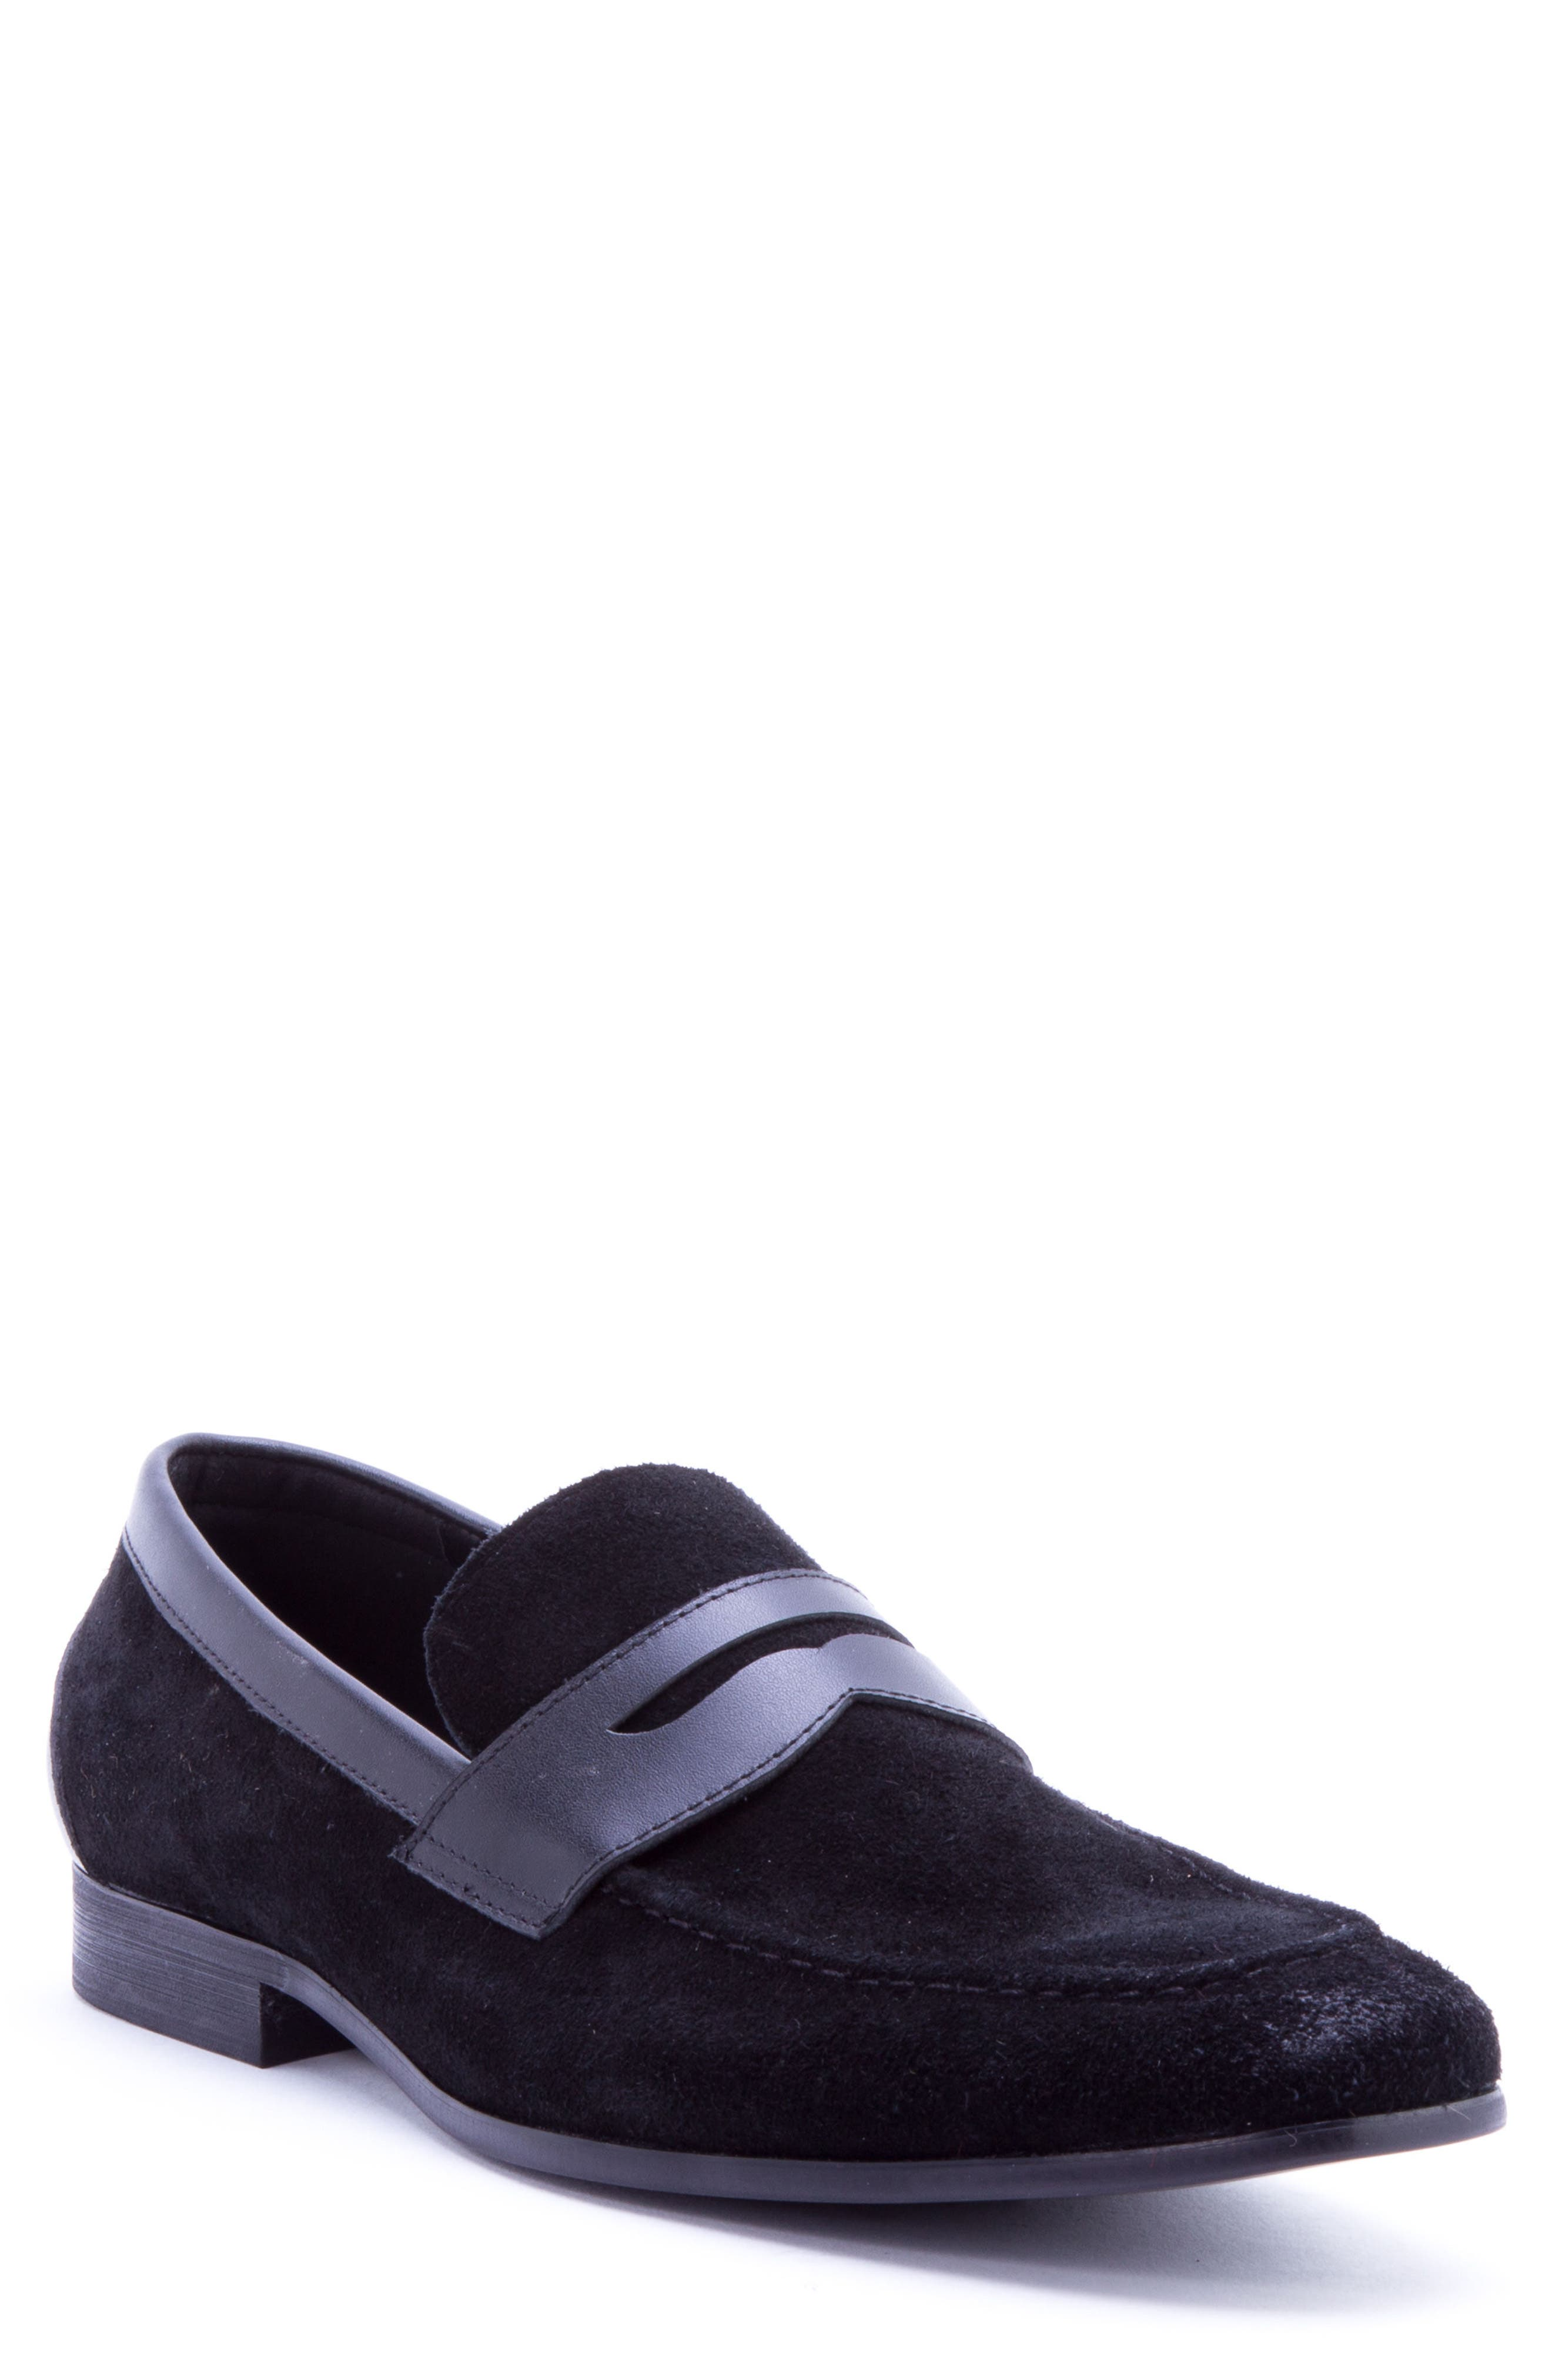 Siena Penny Loafer,                             Main thumbnail 1, color,                             Black Suede/ Leather